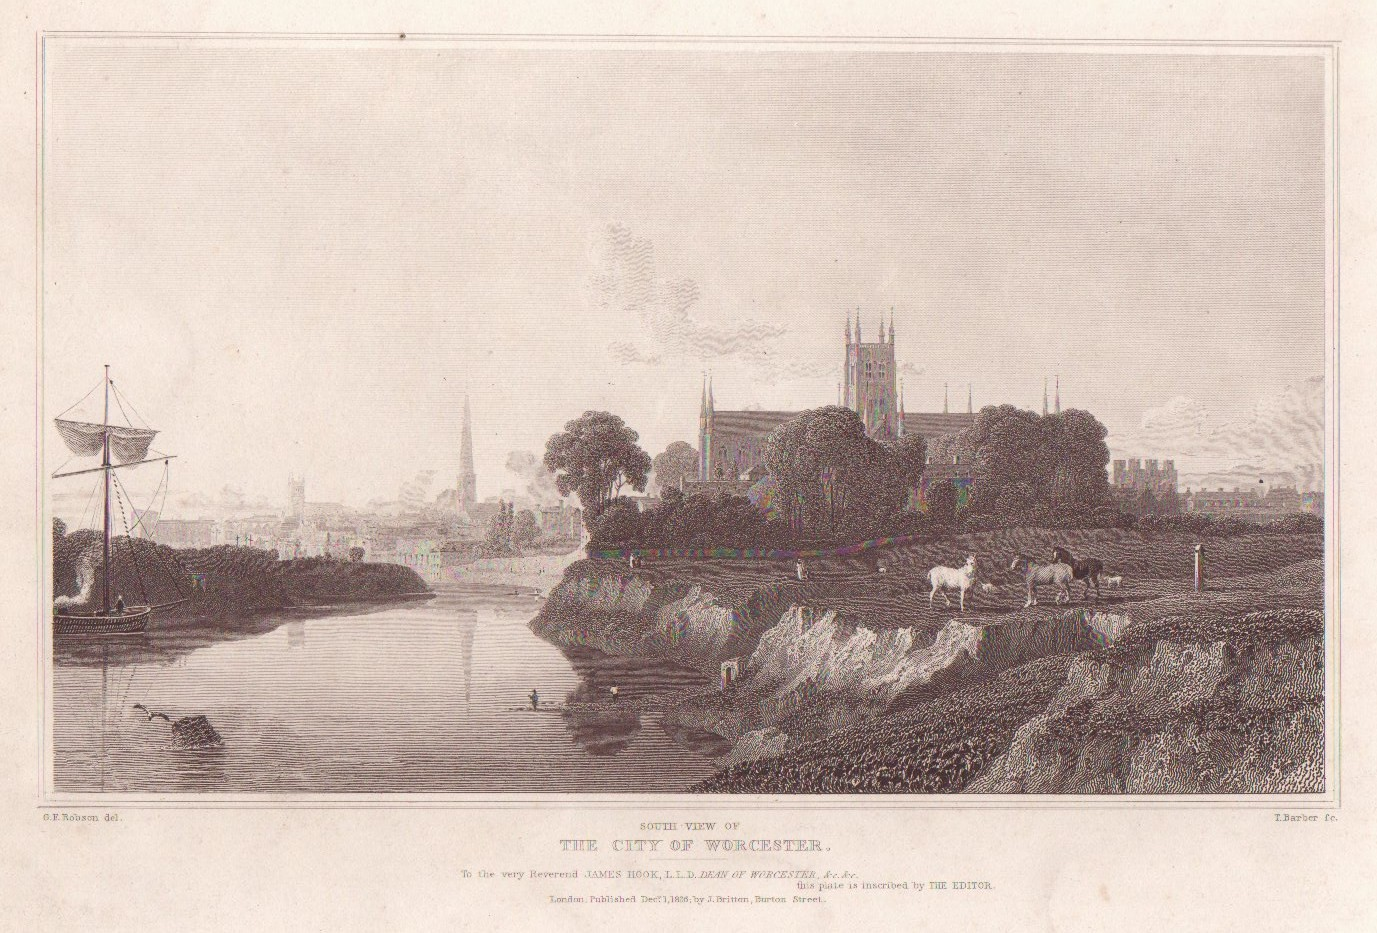 Picturesque Views of the English Cities